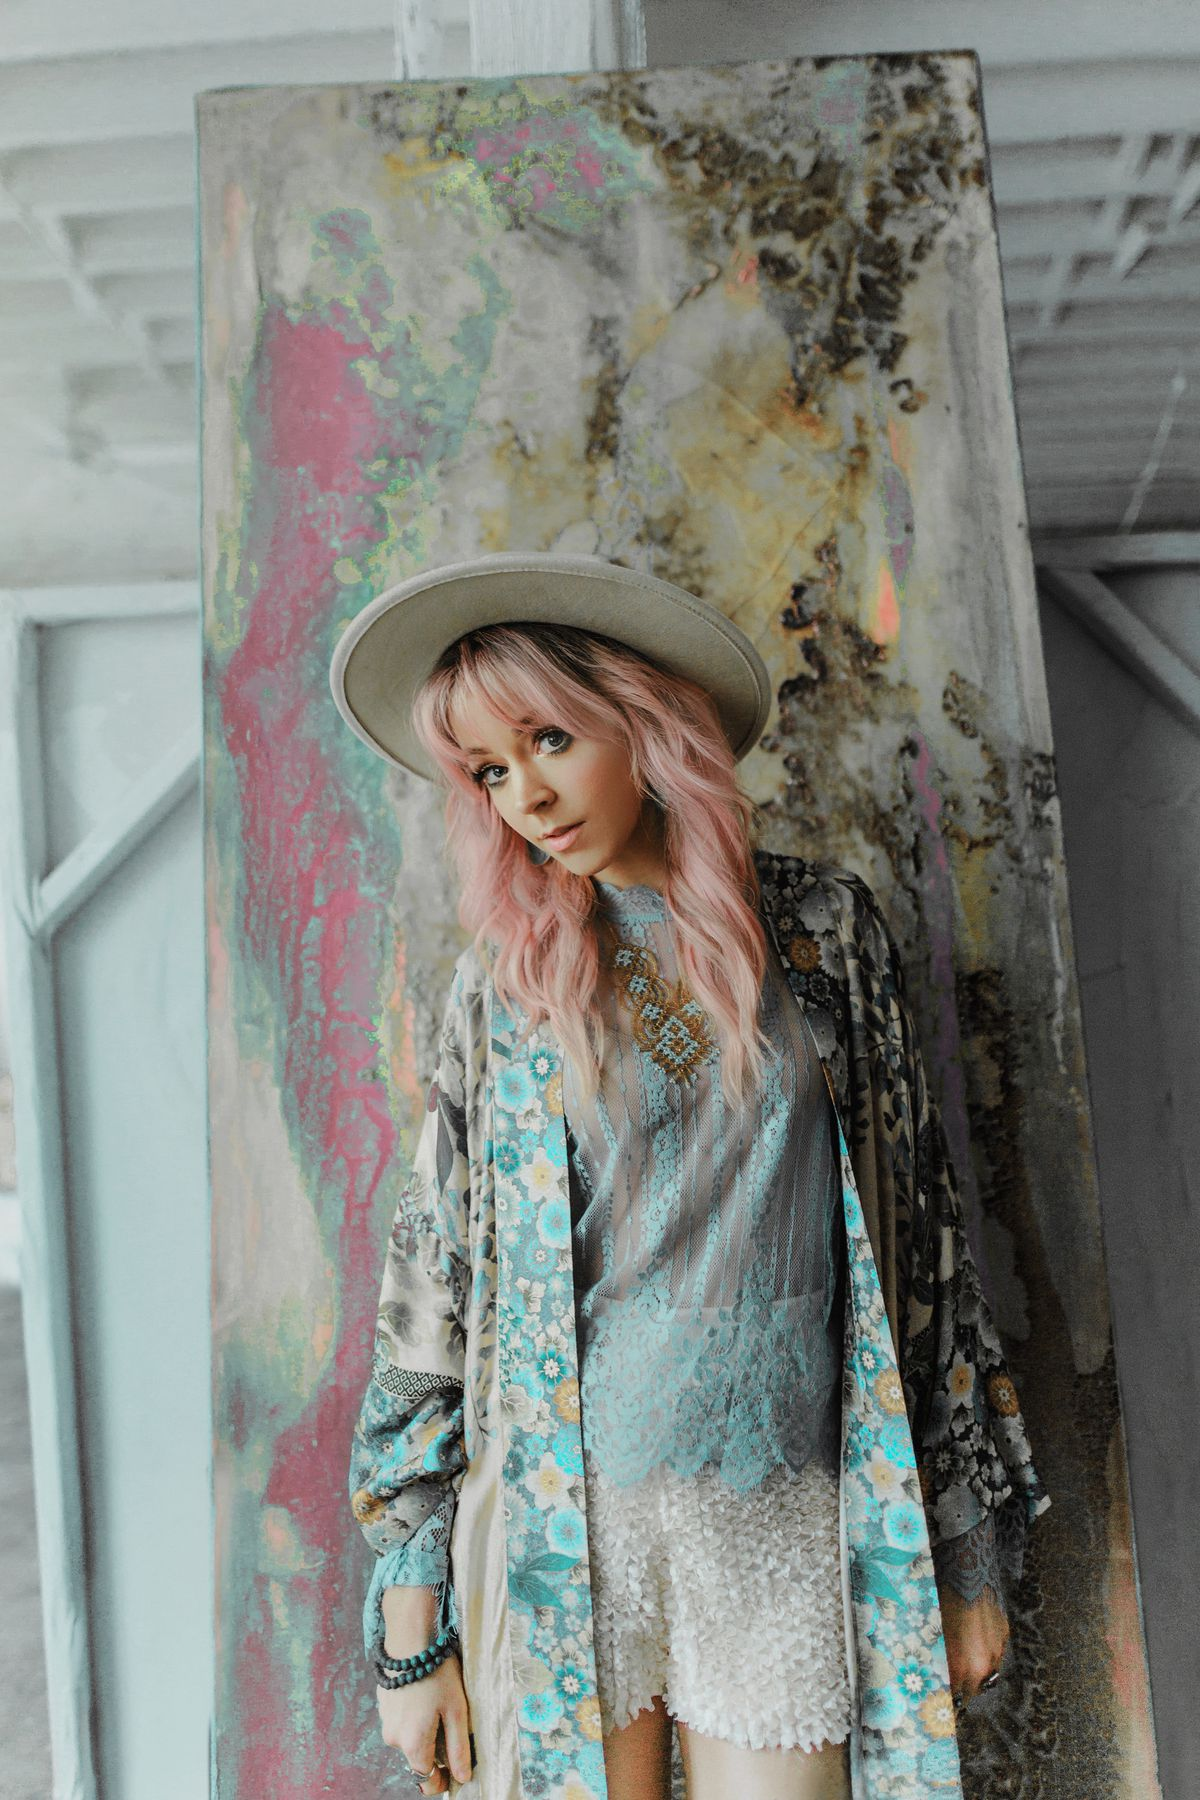 Lindsey Stirling in a promotional photoshoot for her North American tour, Artemis.